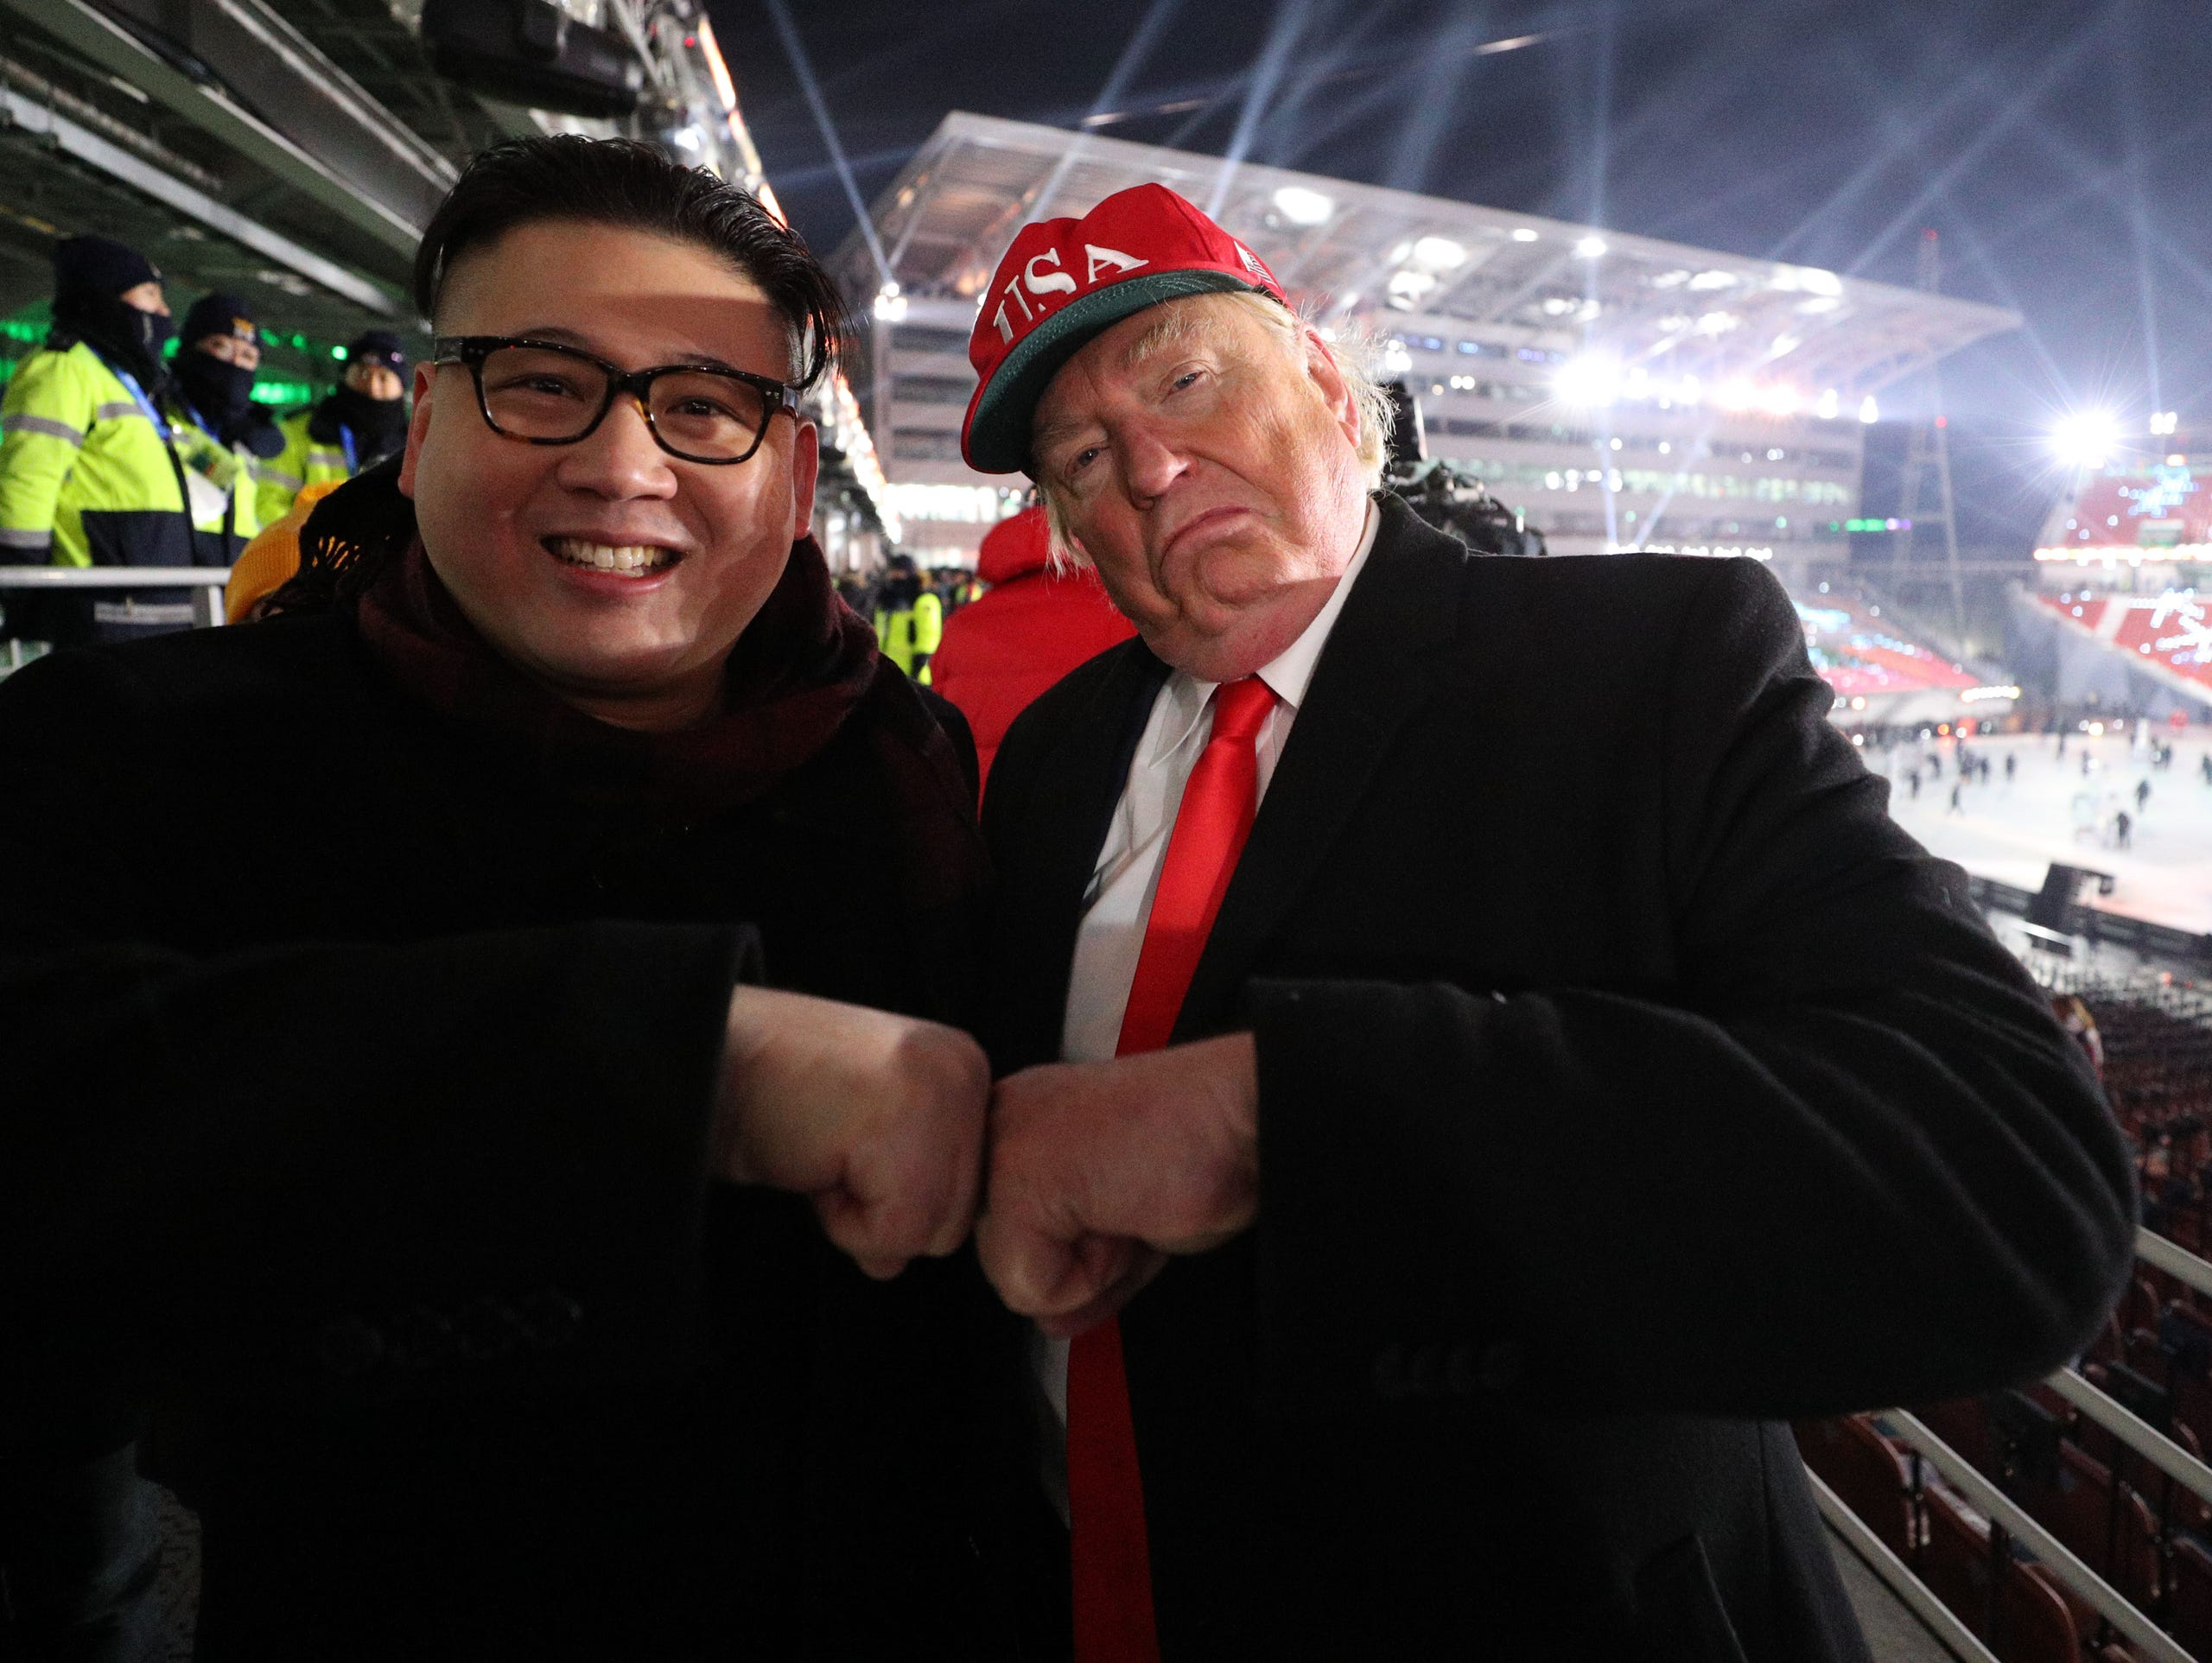 A Kim Jon Un impersonator and a Donald Trump impersonator